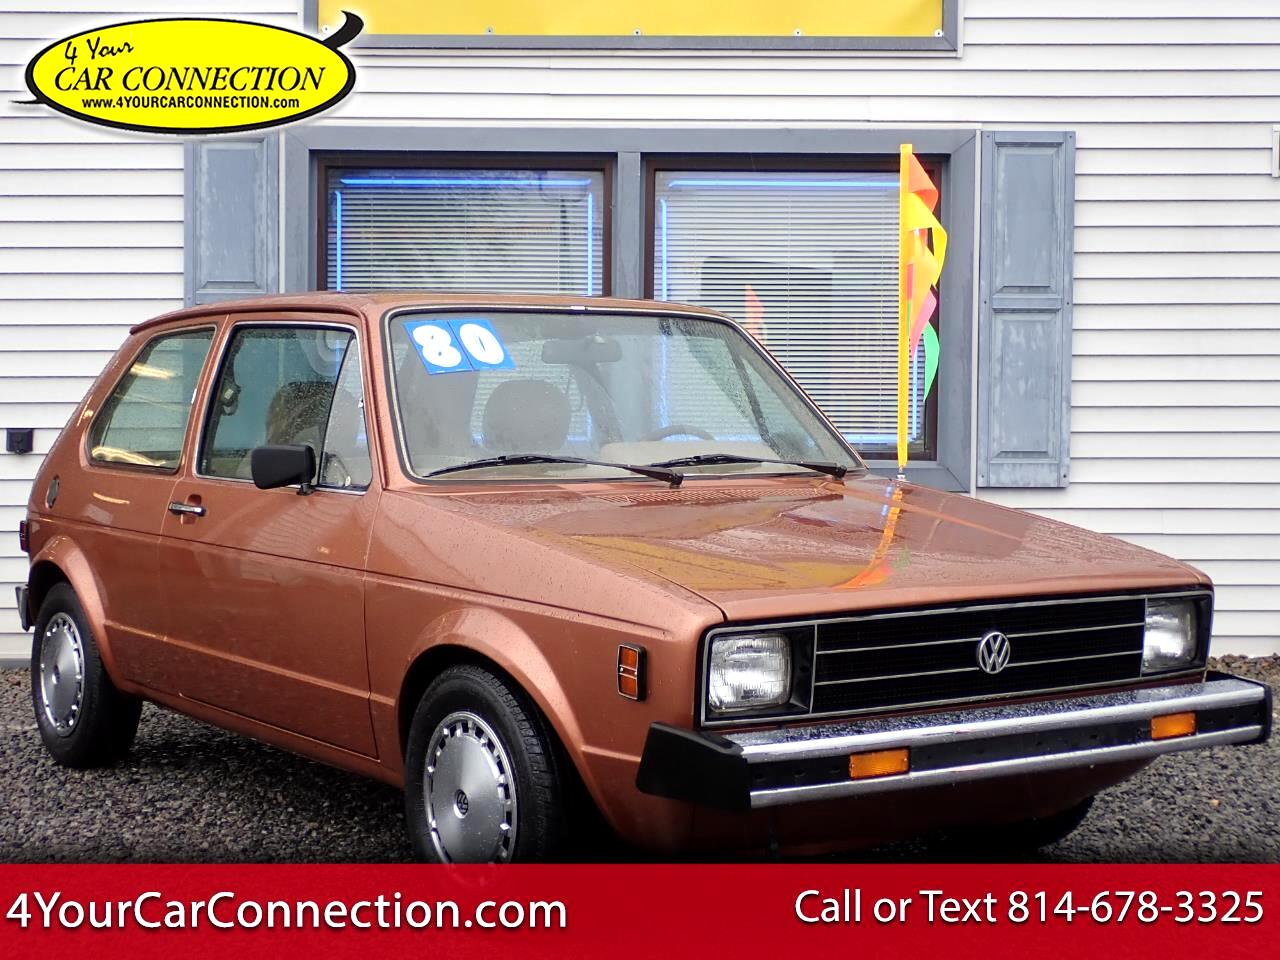 Volkswagen Rabbit L 1980